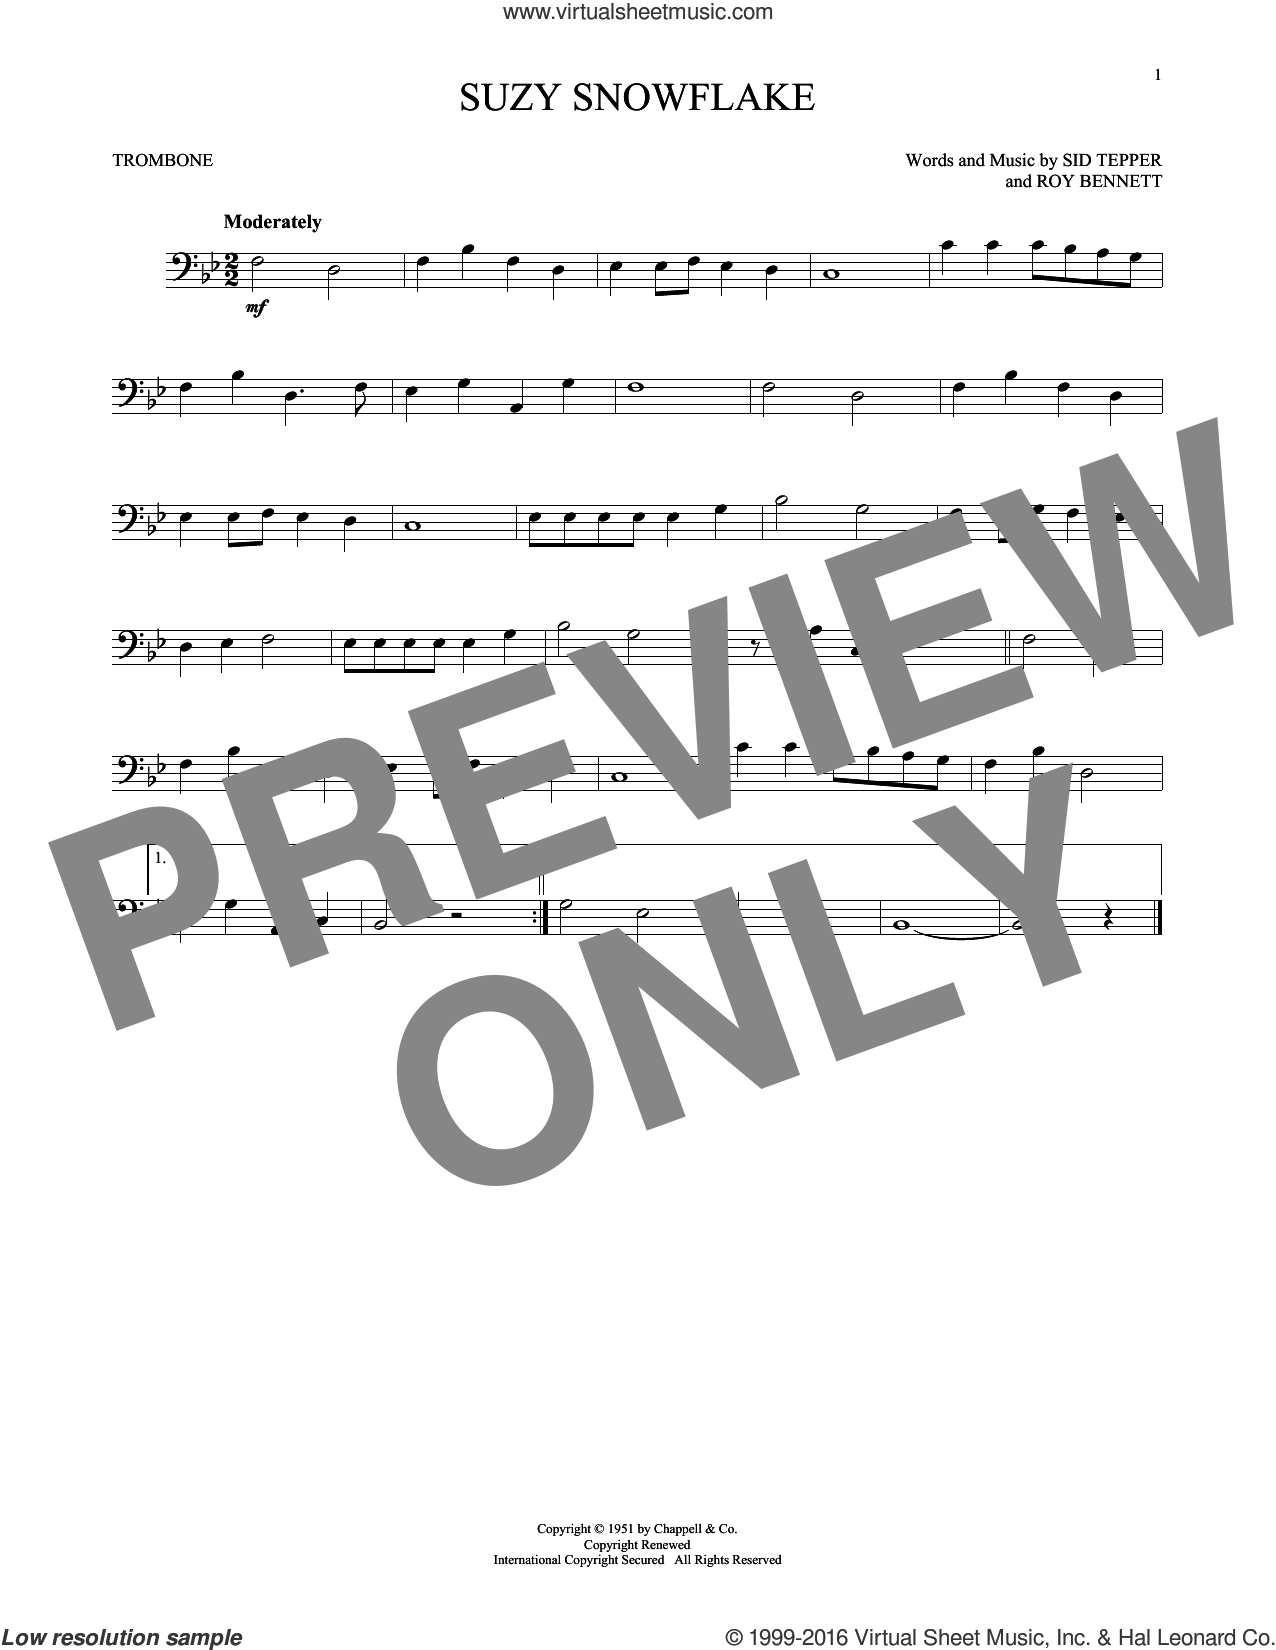 Suzy Snowflake sheet music for trombone solo by Roy Bennett, Sid Tepper and Sid Tepper and Roy Bennett, intermediate skill level